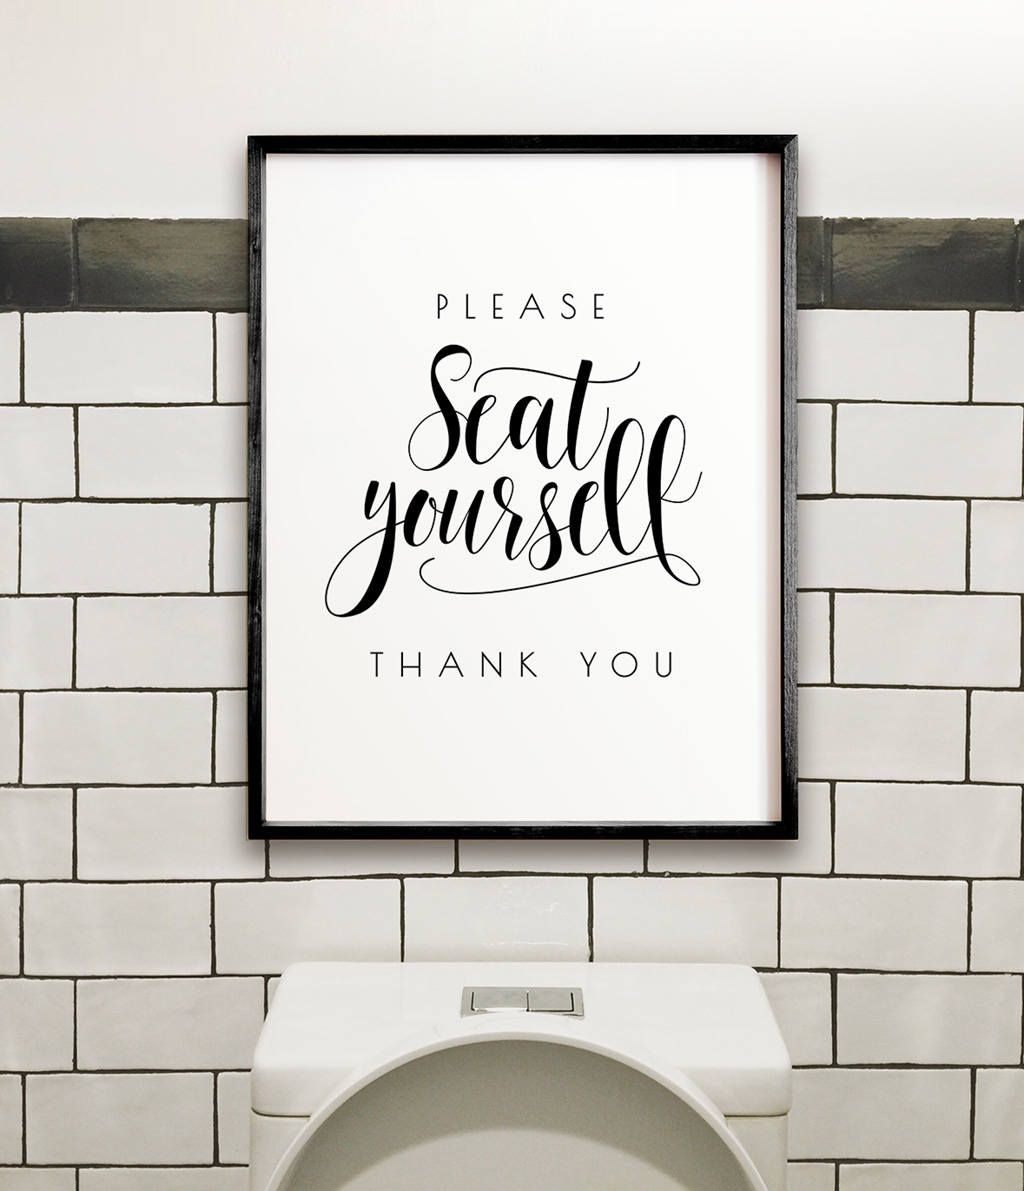 Please seat yourself bathroom wall decor printable wall art please seat yourself bathroom wall decor printable wall art funny bathroom art solutioingenieria Images